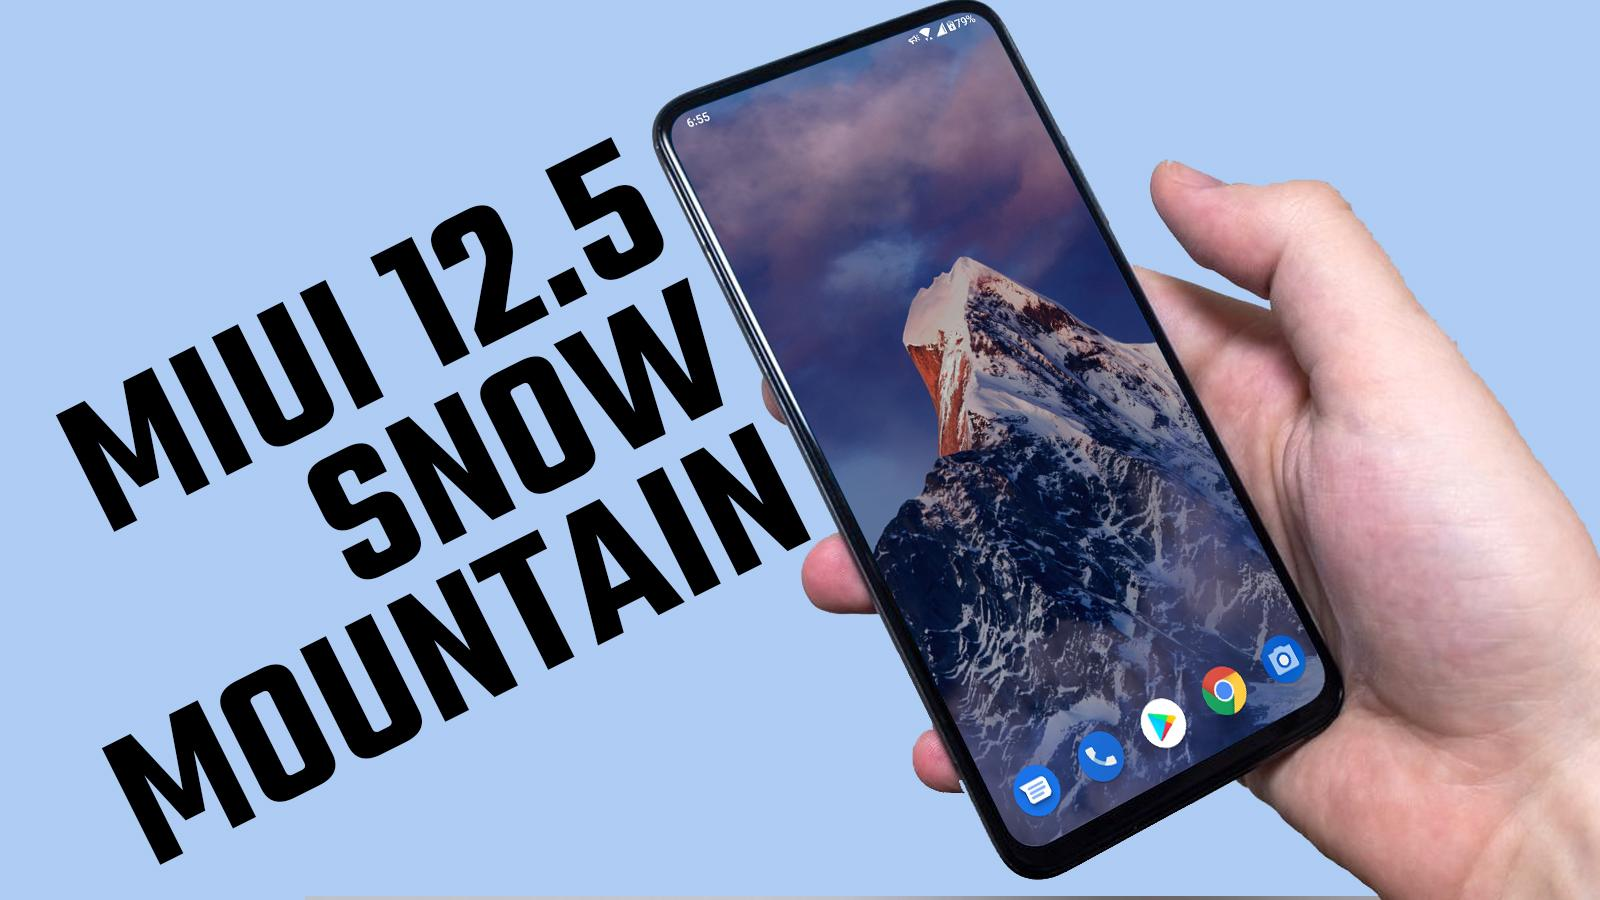 How to Install MIUI 12.5 Snow Mountain Super Wallpaper on Android Smartphone